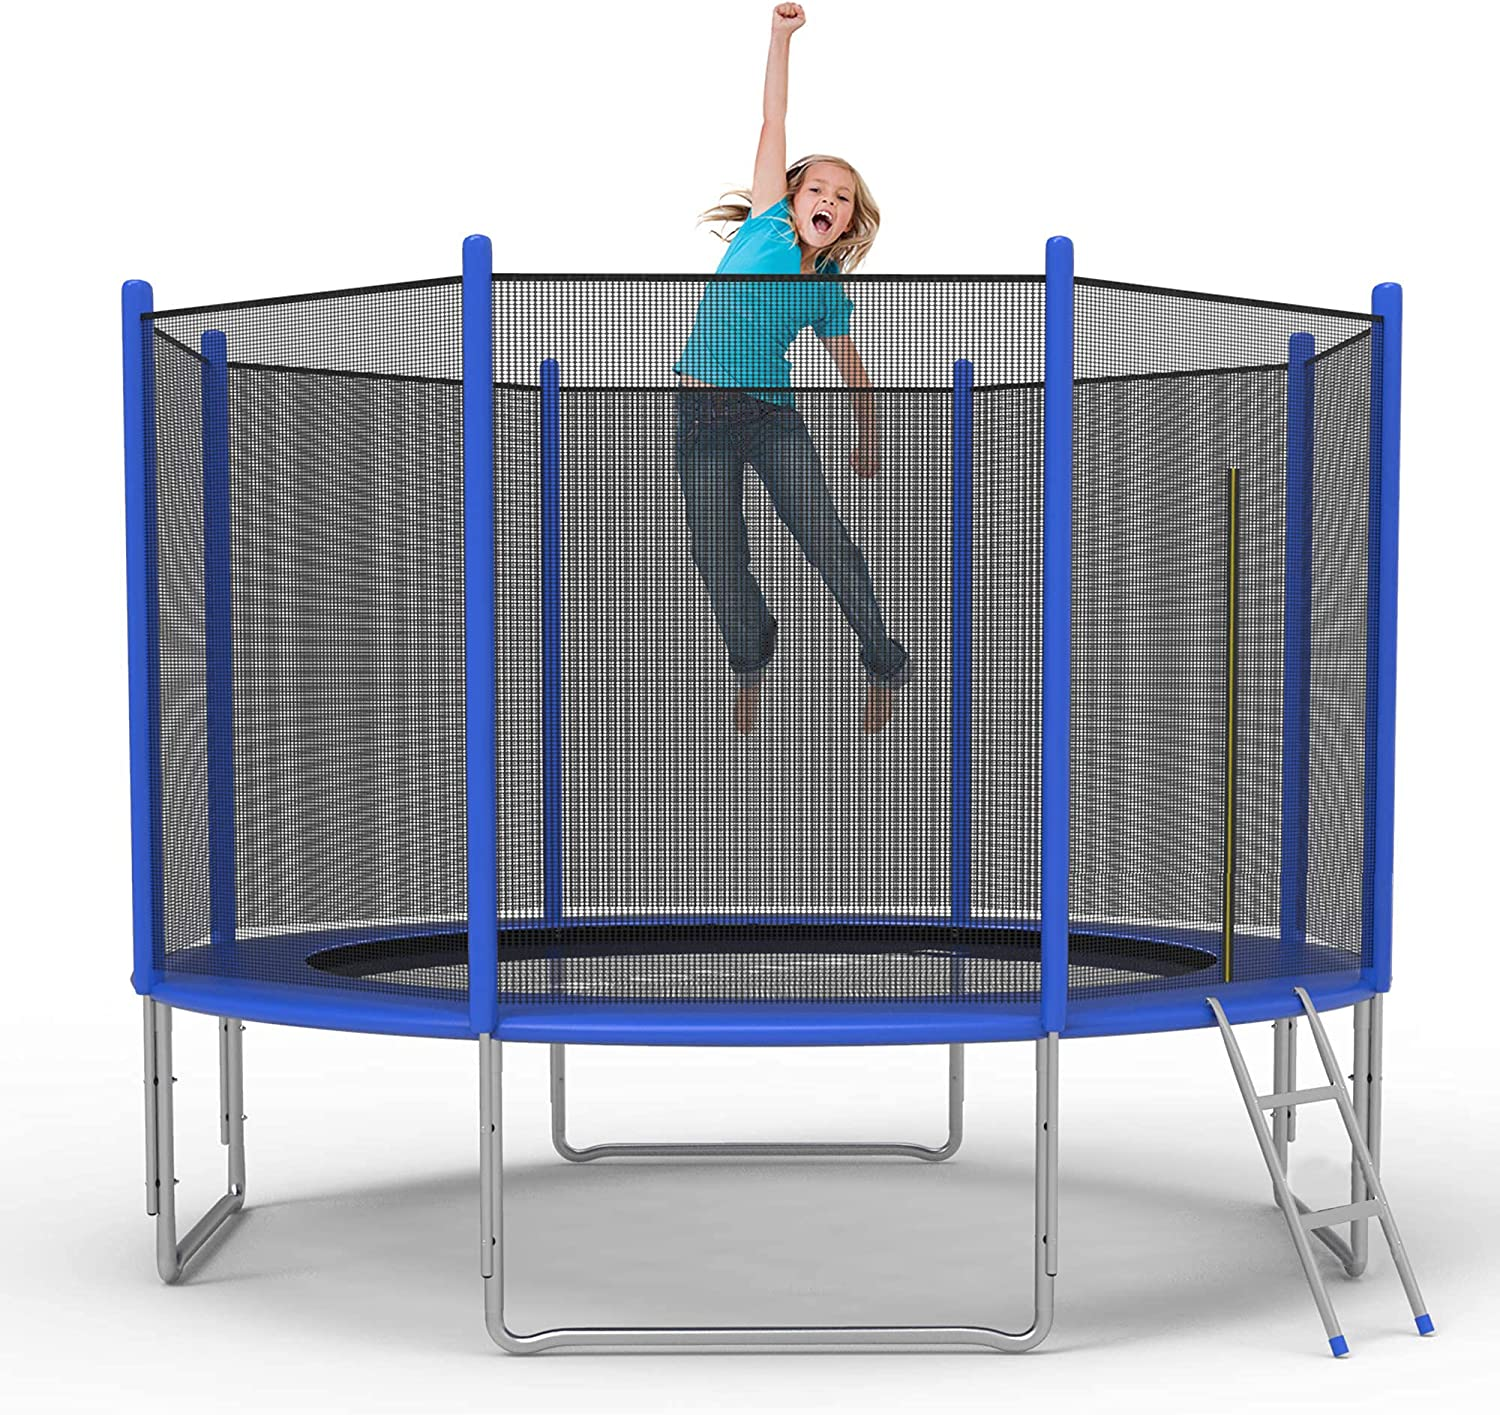 Koreyosh 10FT 12FT Trampoline with Ladd and Net Cheap Online limited product Safety Enclosure